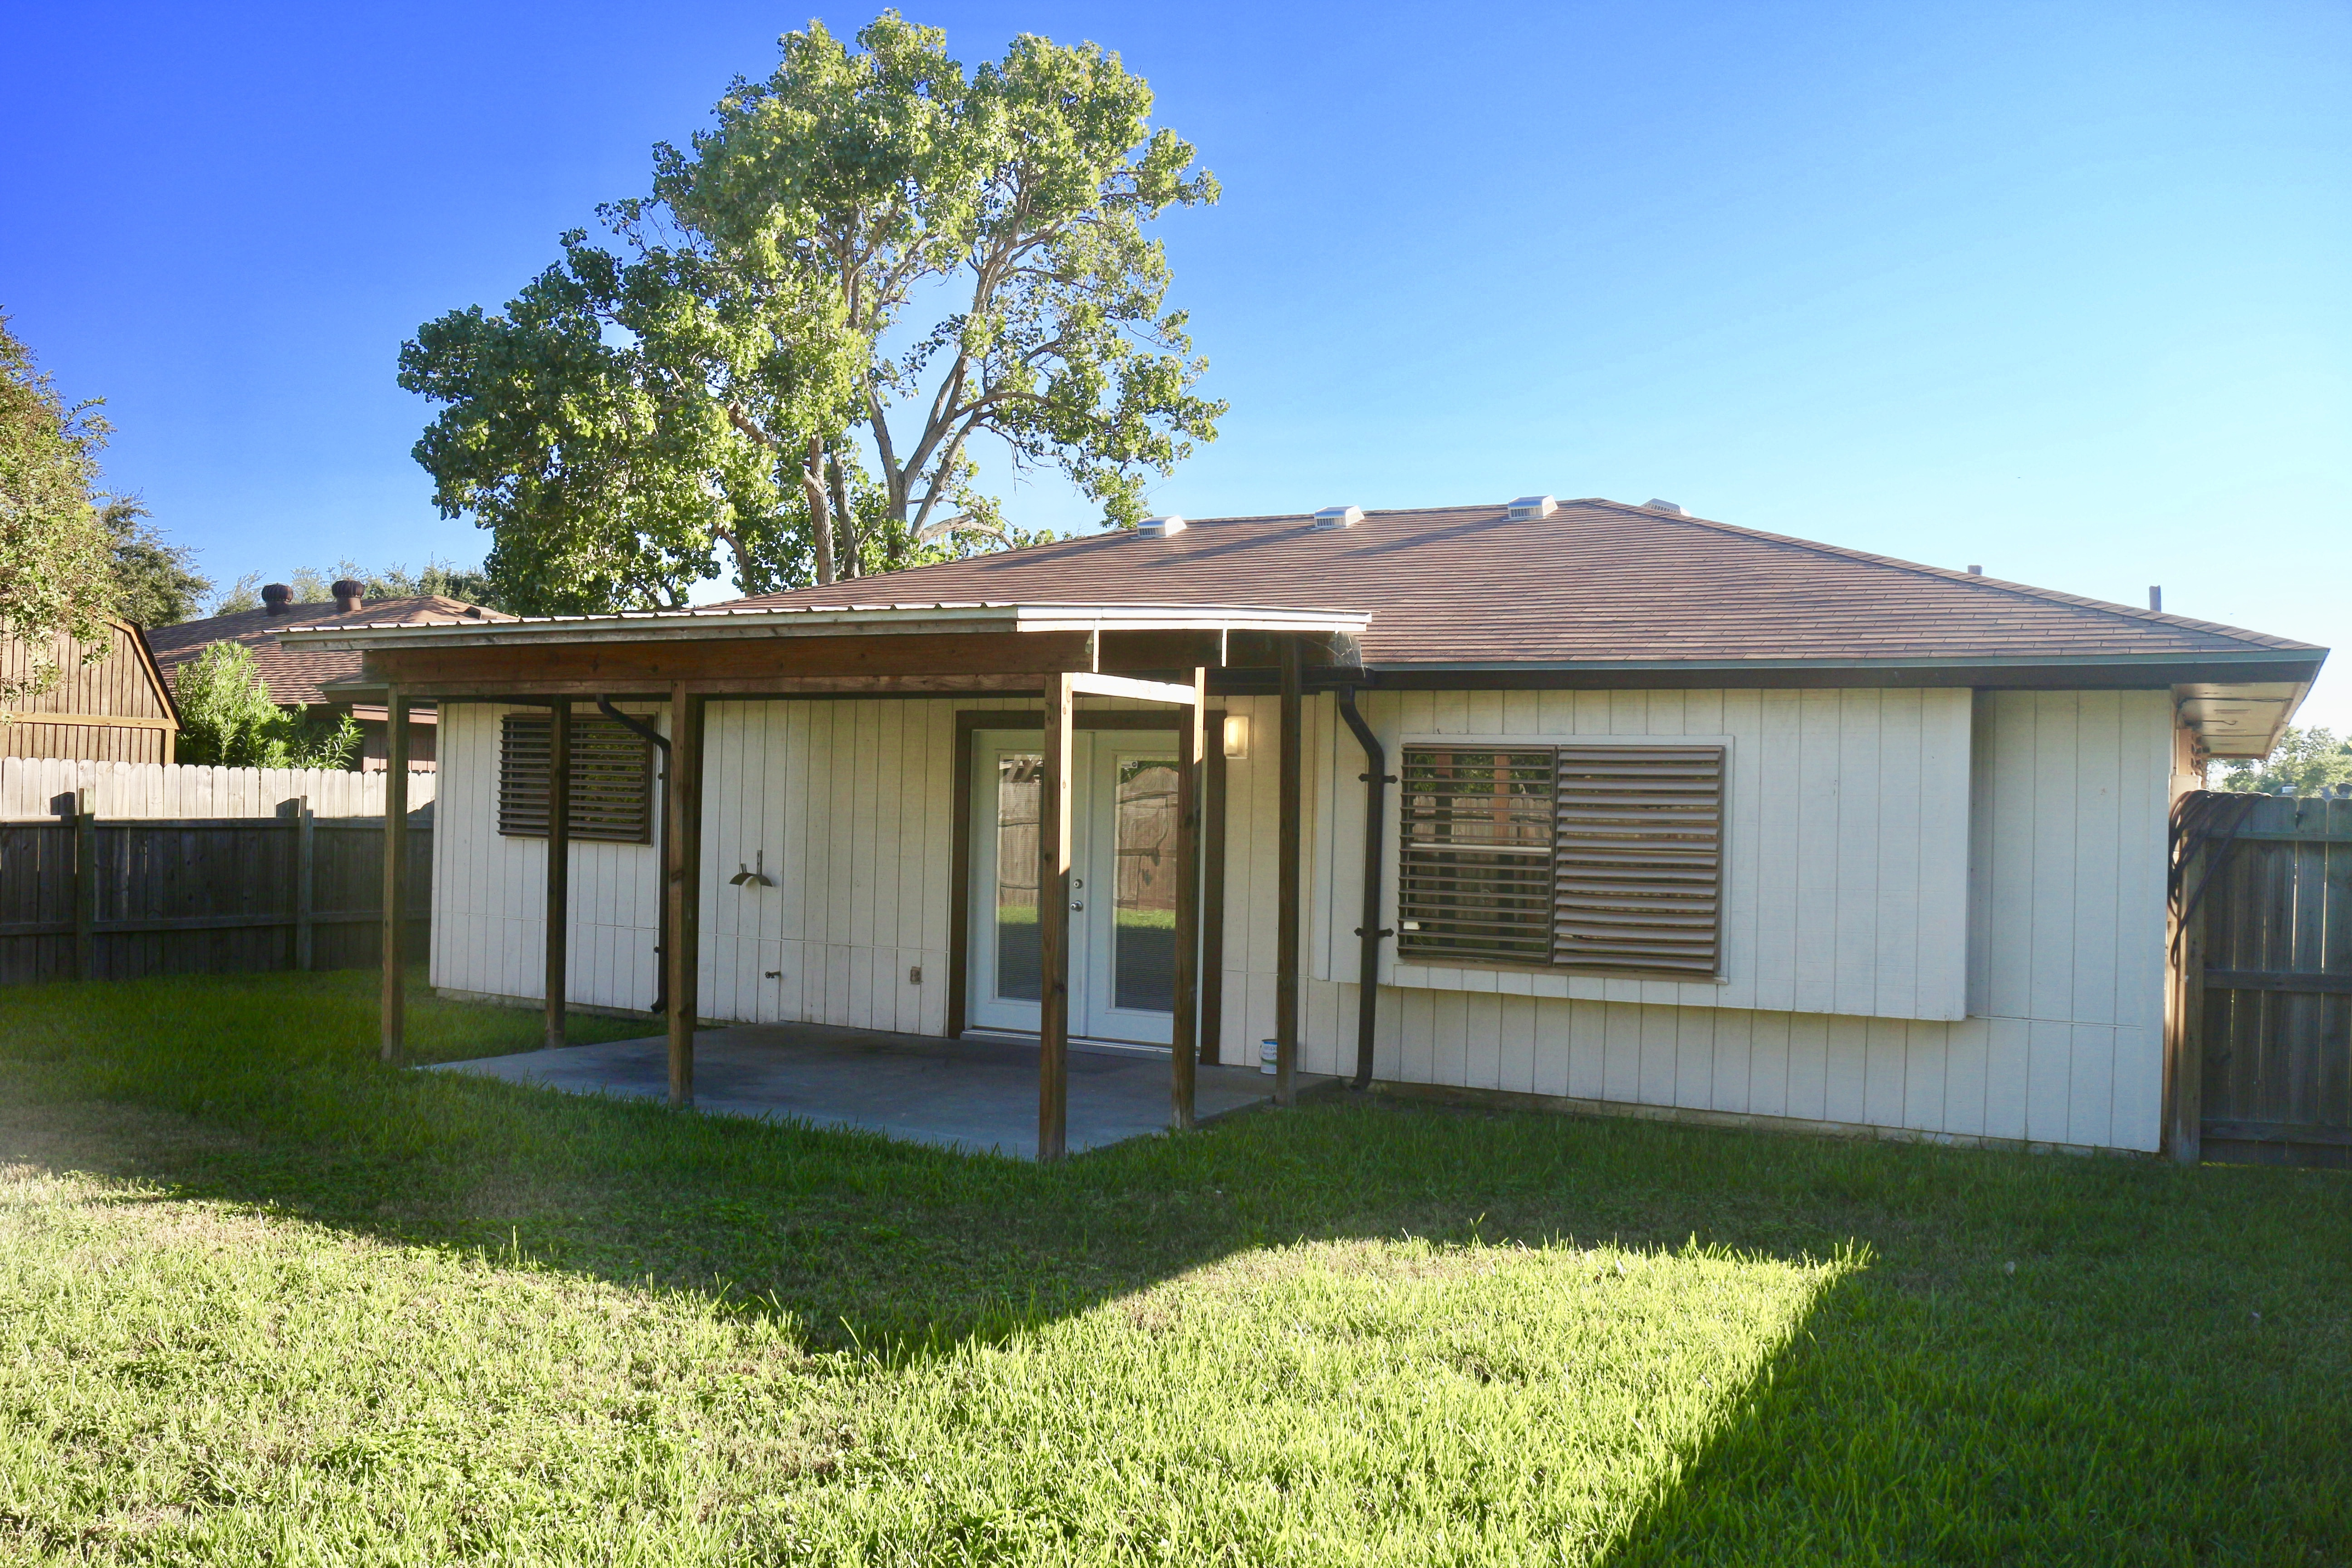 Affordable 3 2 Home For Sale In Flour Bluff Corpus Chri